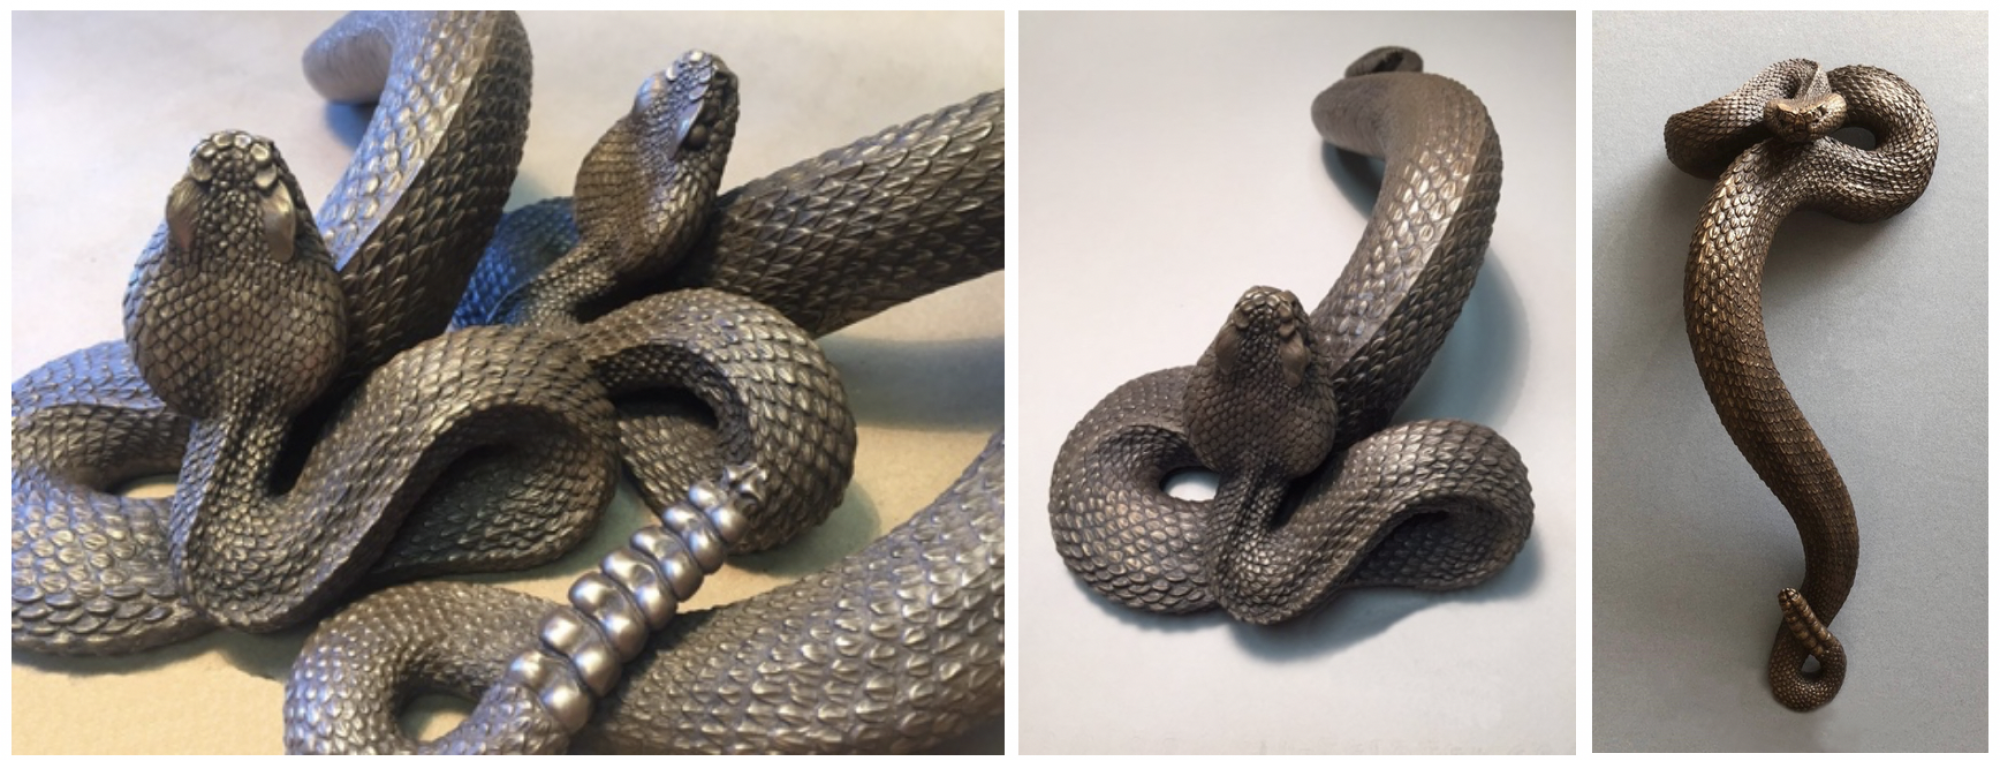 One of our new scores on Etsy is SnakeArts from artist J.L. Cook, whose cast bronze rattlesnake handle is nothing short of magnificent. (Images: Etsy)